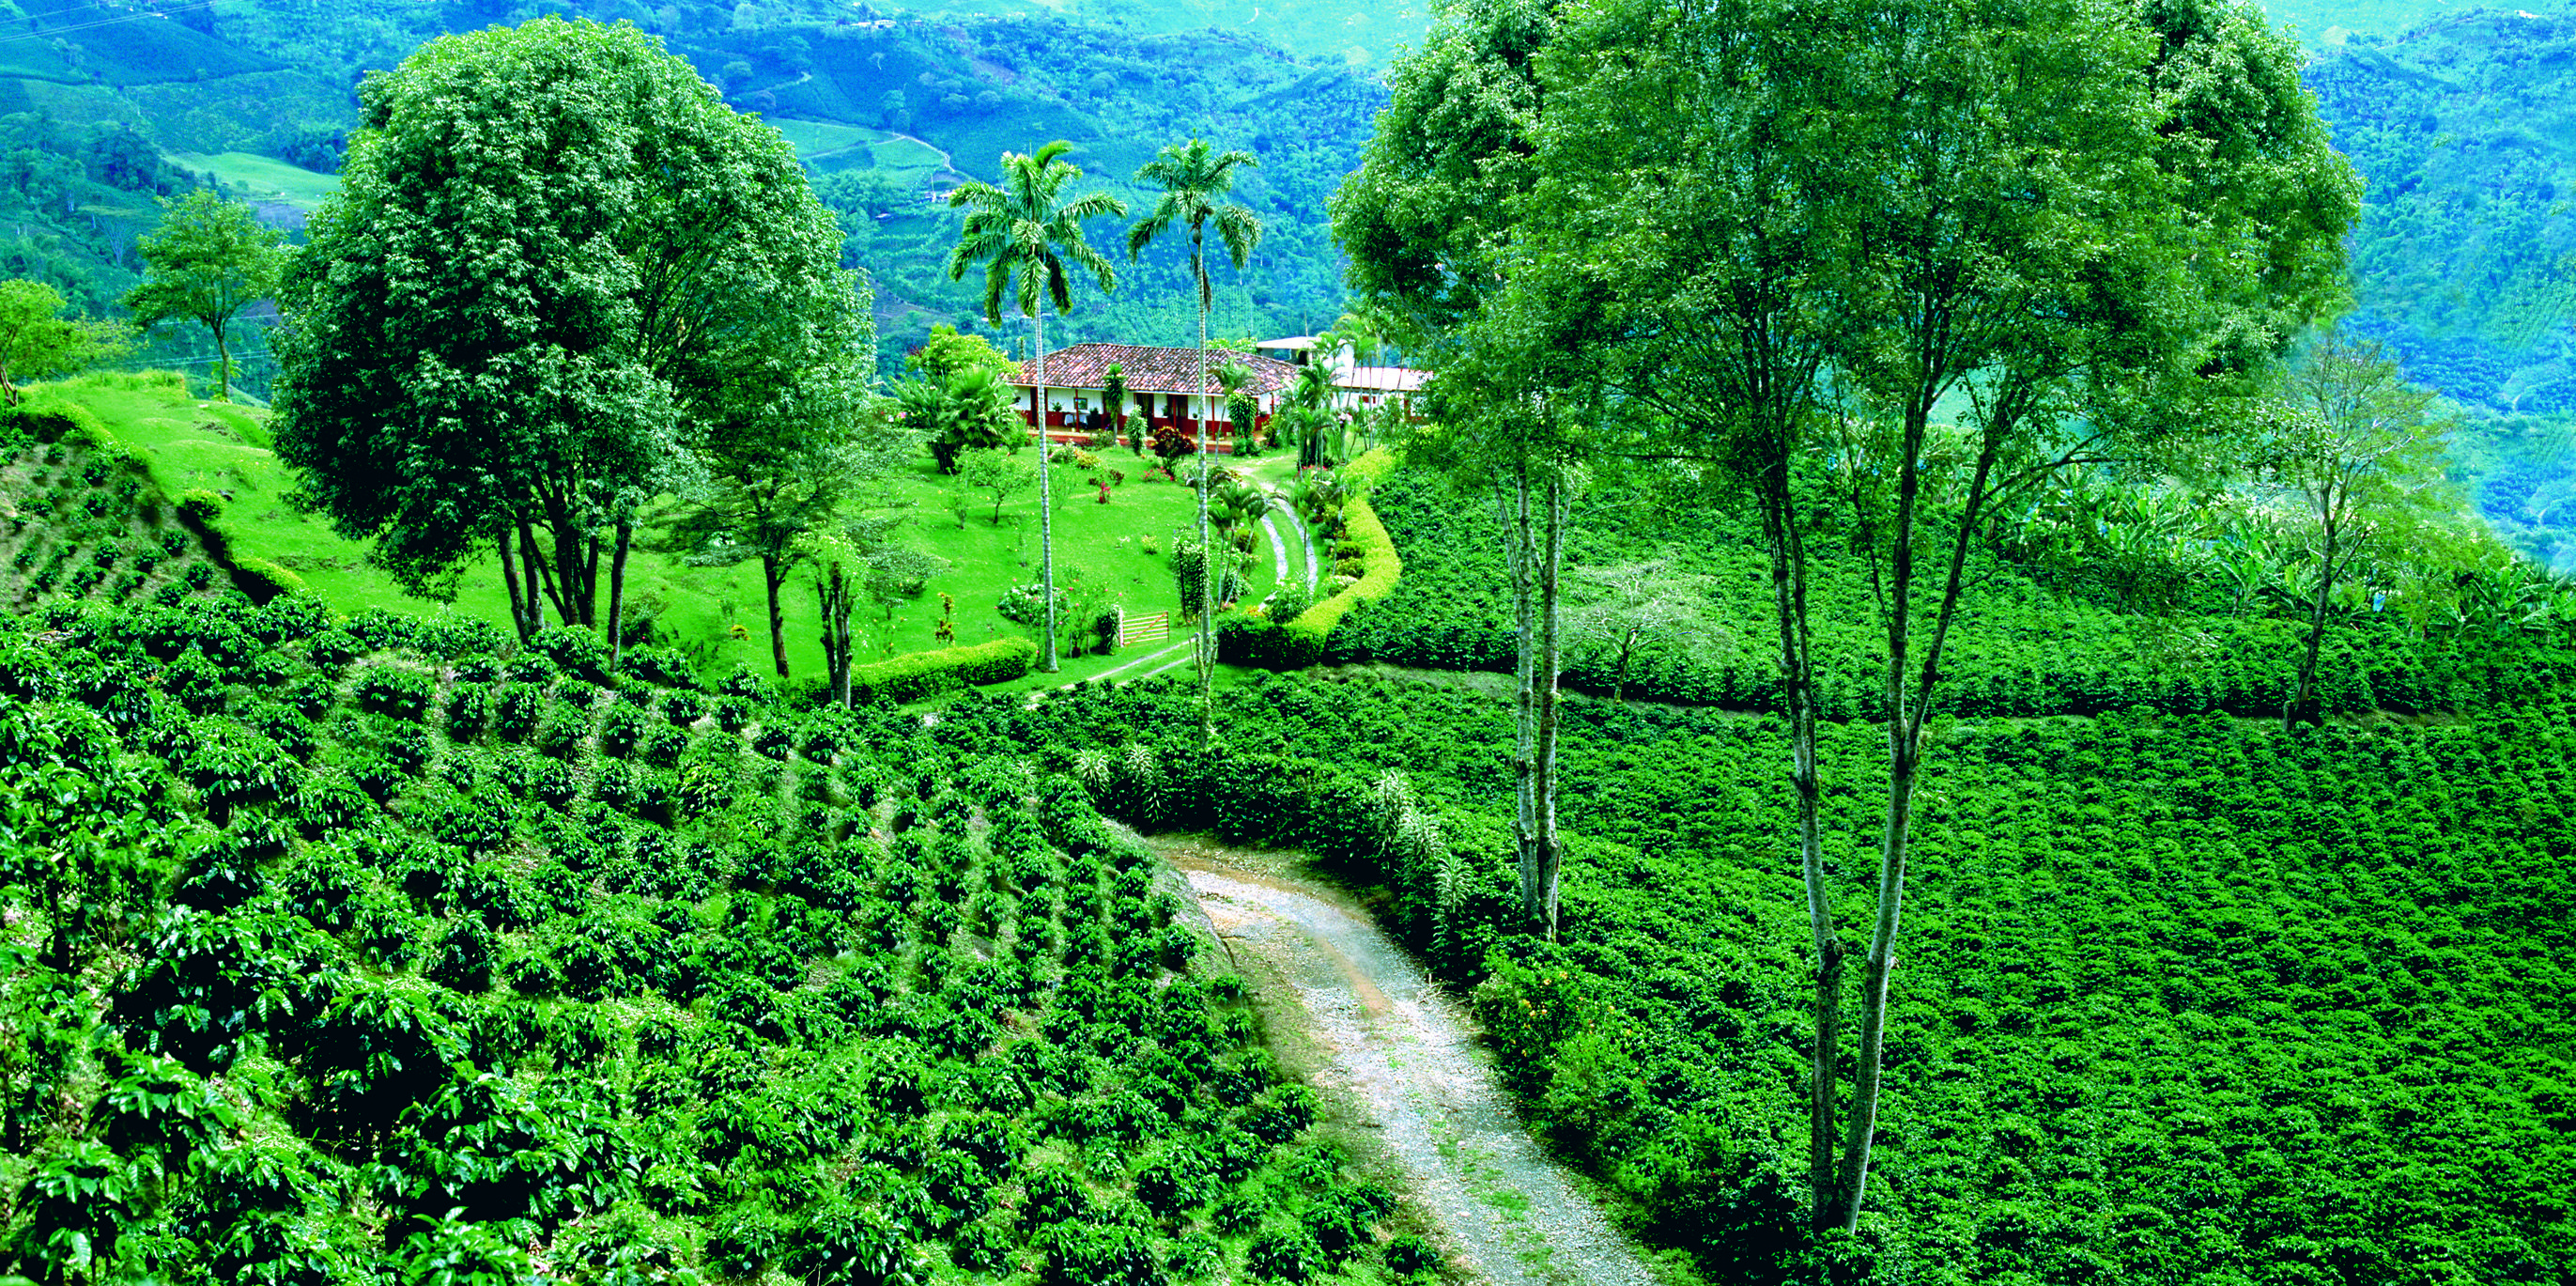 The Colombian Coffee Cultural Landscape The Traditional Coffee Process From The Seed To The Cup Viaje En America Del Sur Finca Cafetera Paisajes De Colombia